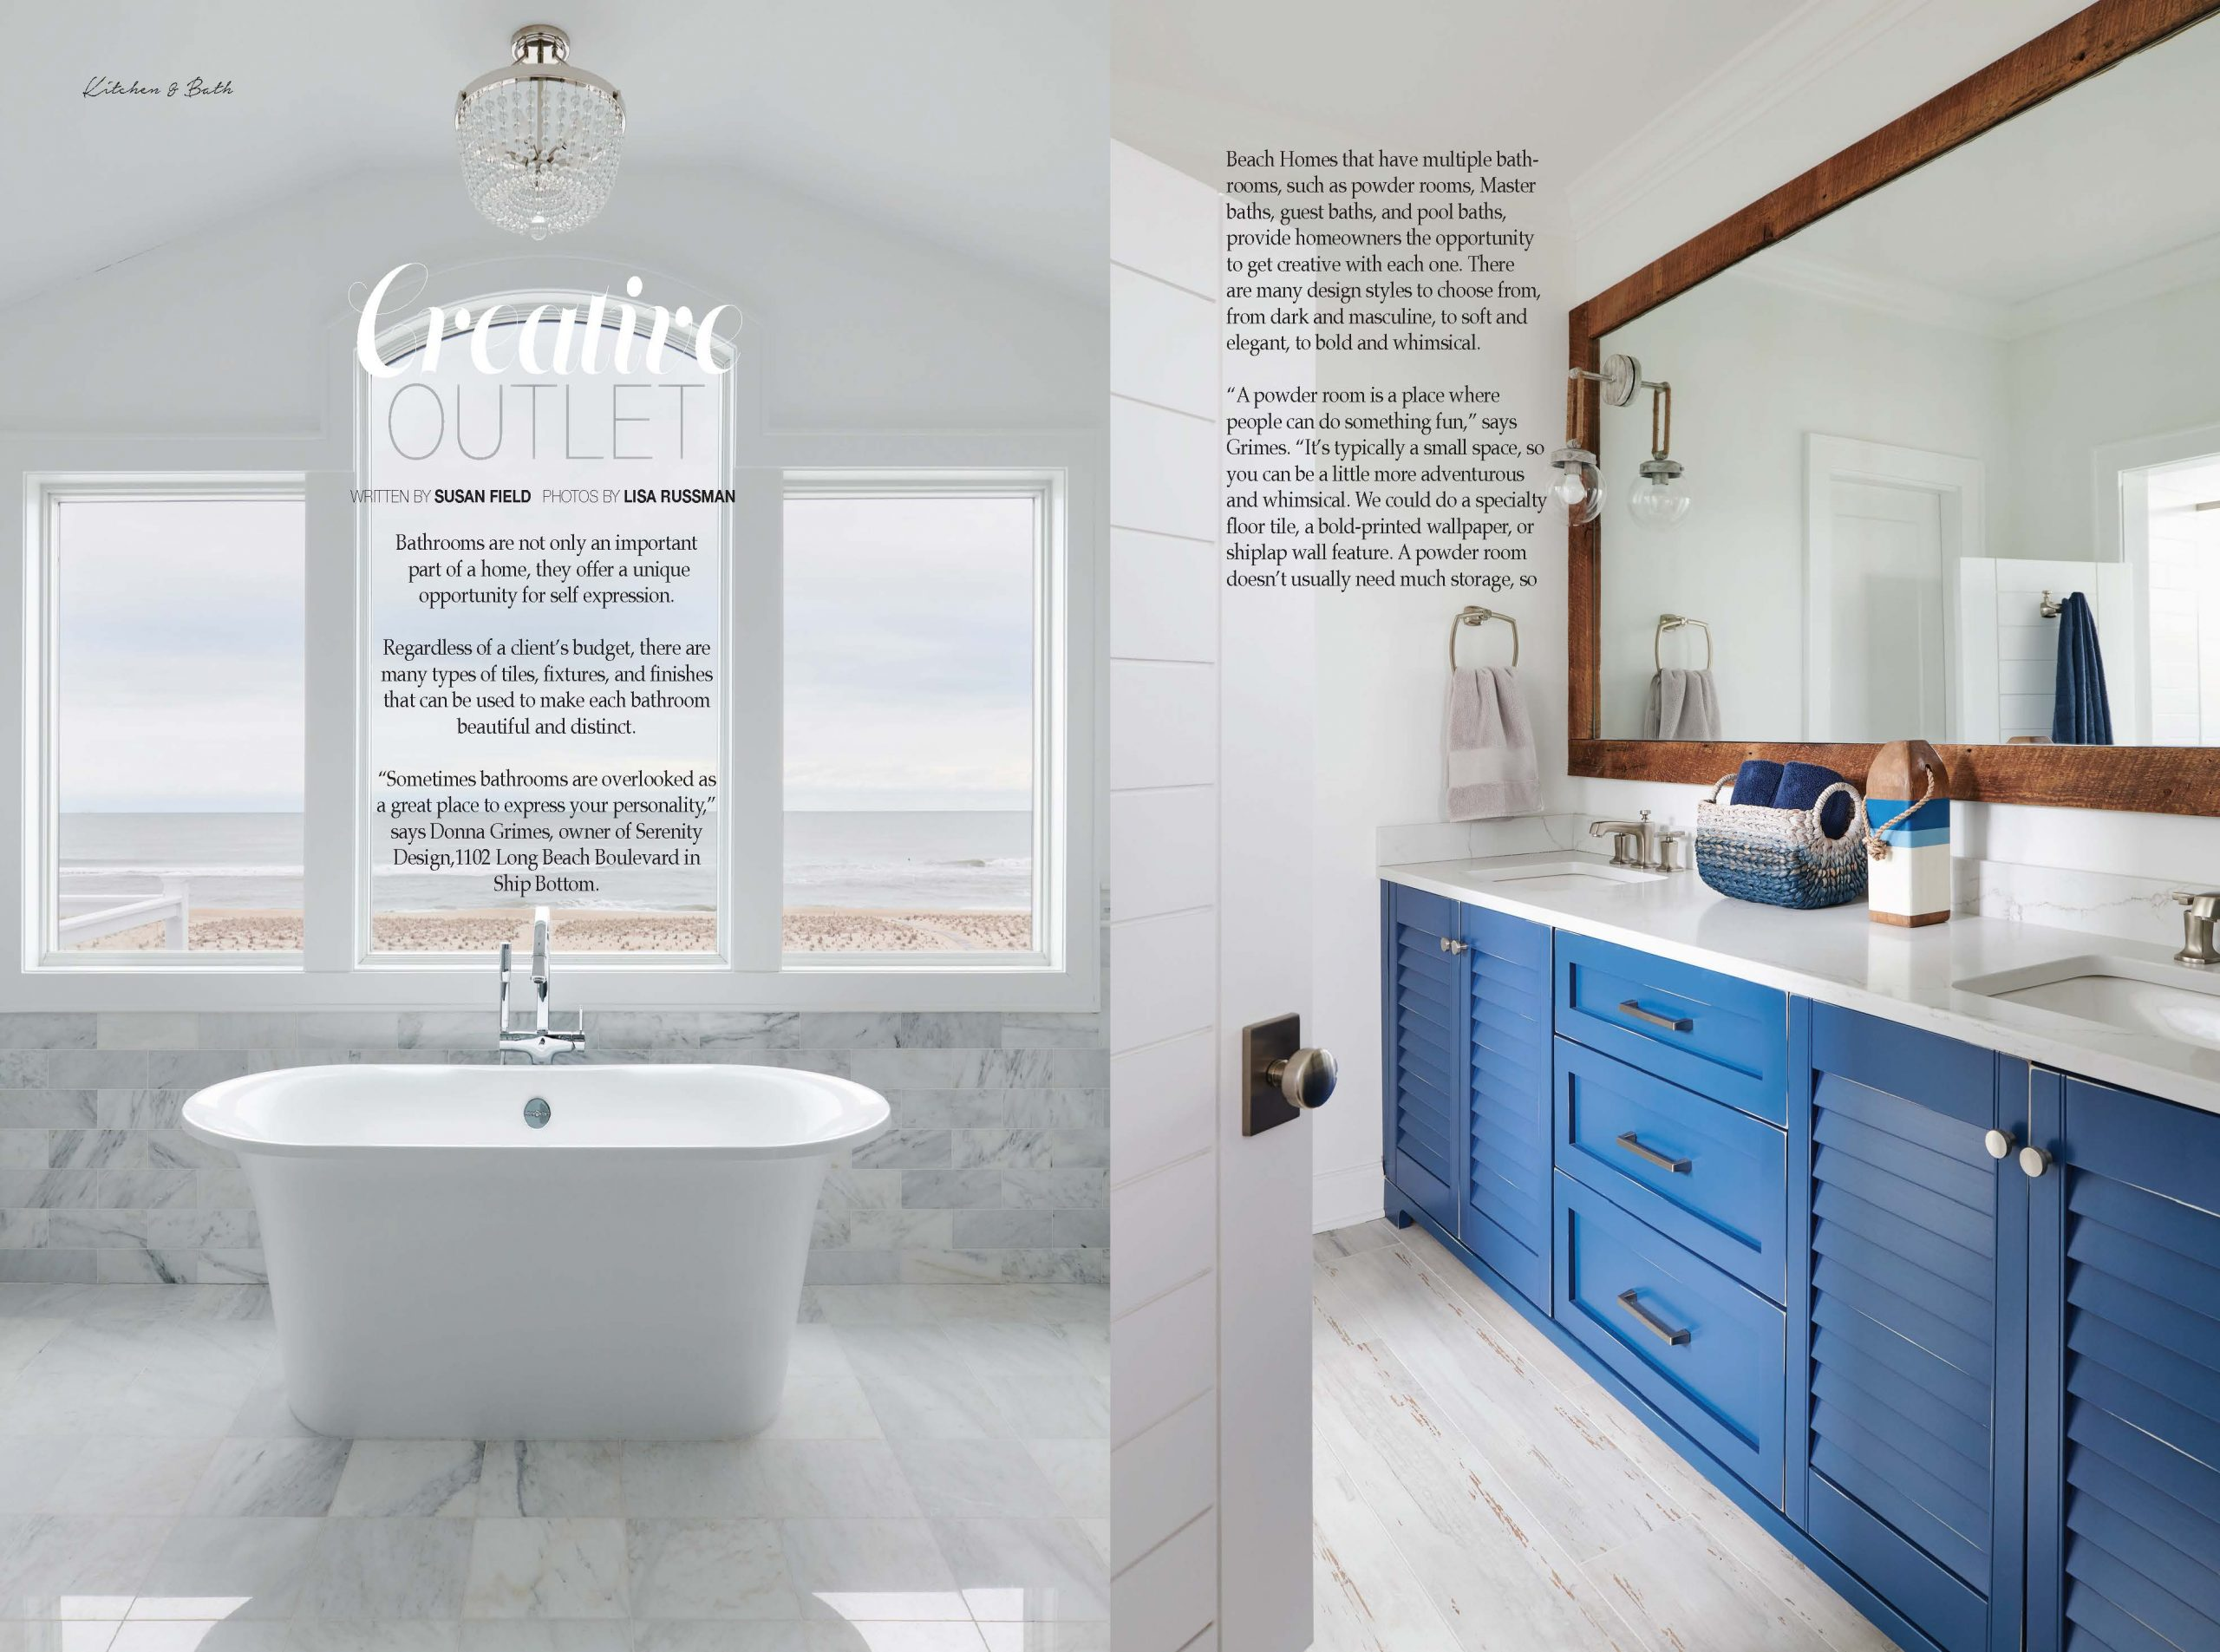 open-house-magazine-spring-2021_serenity_page_1